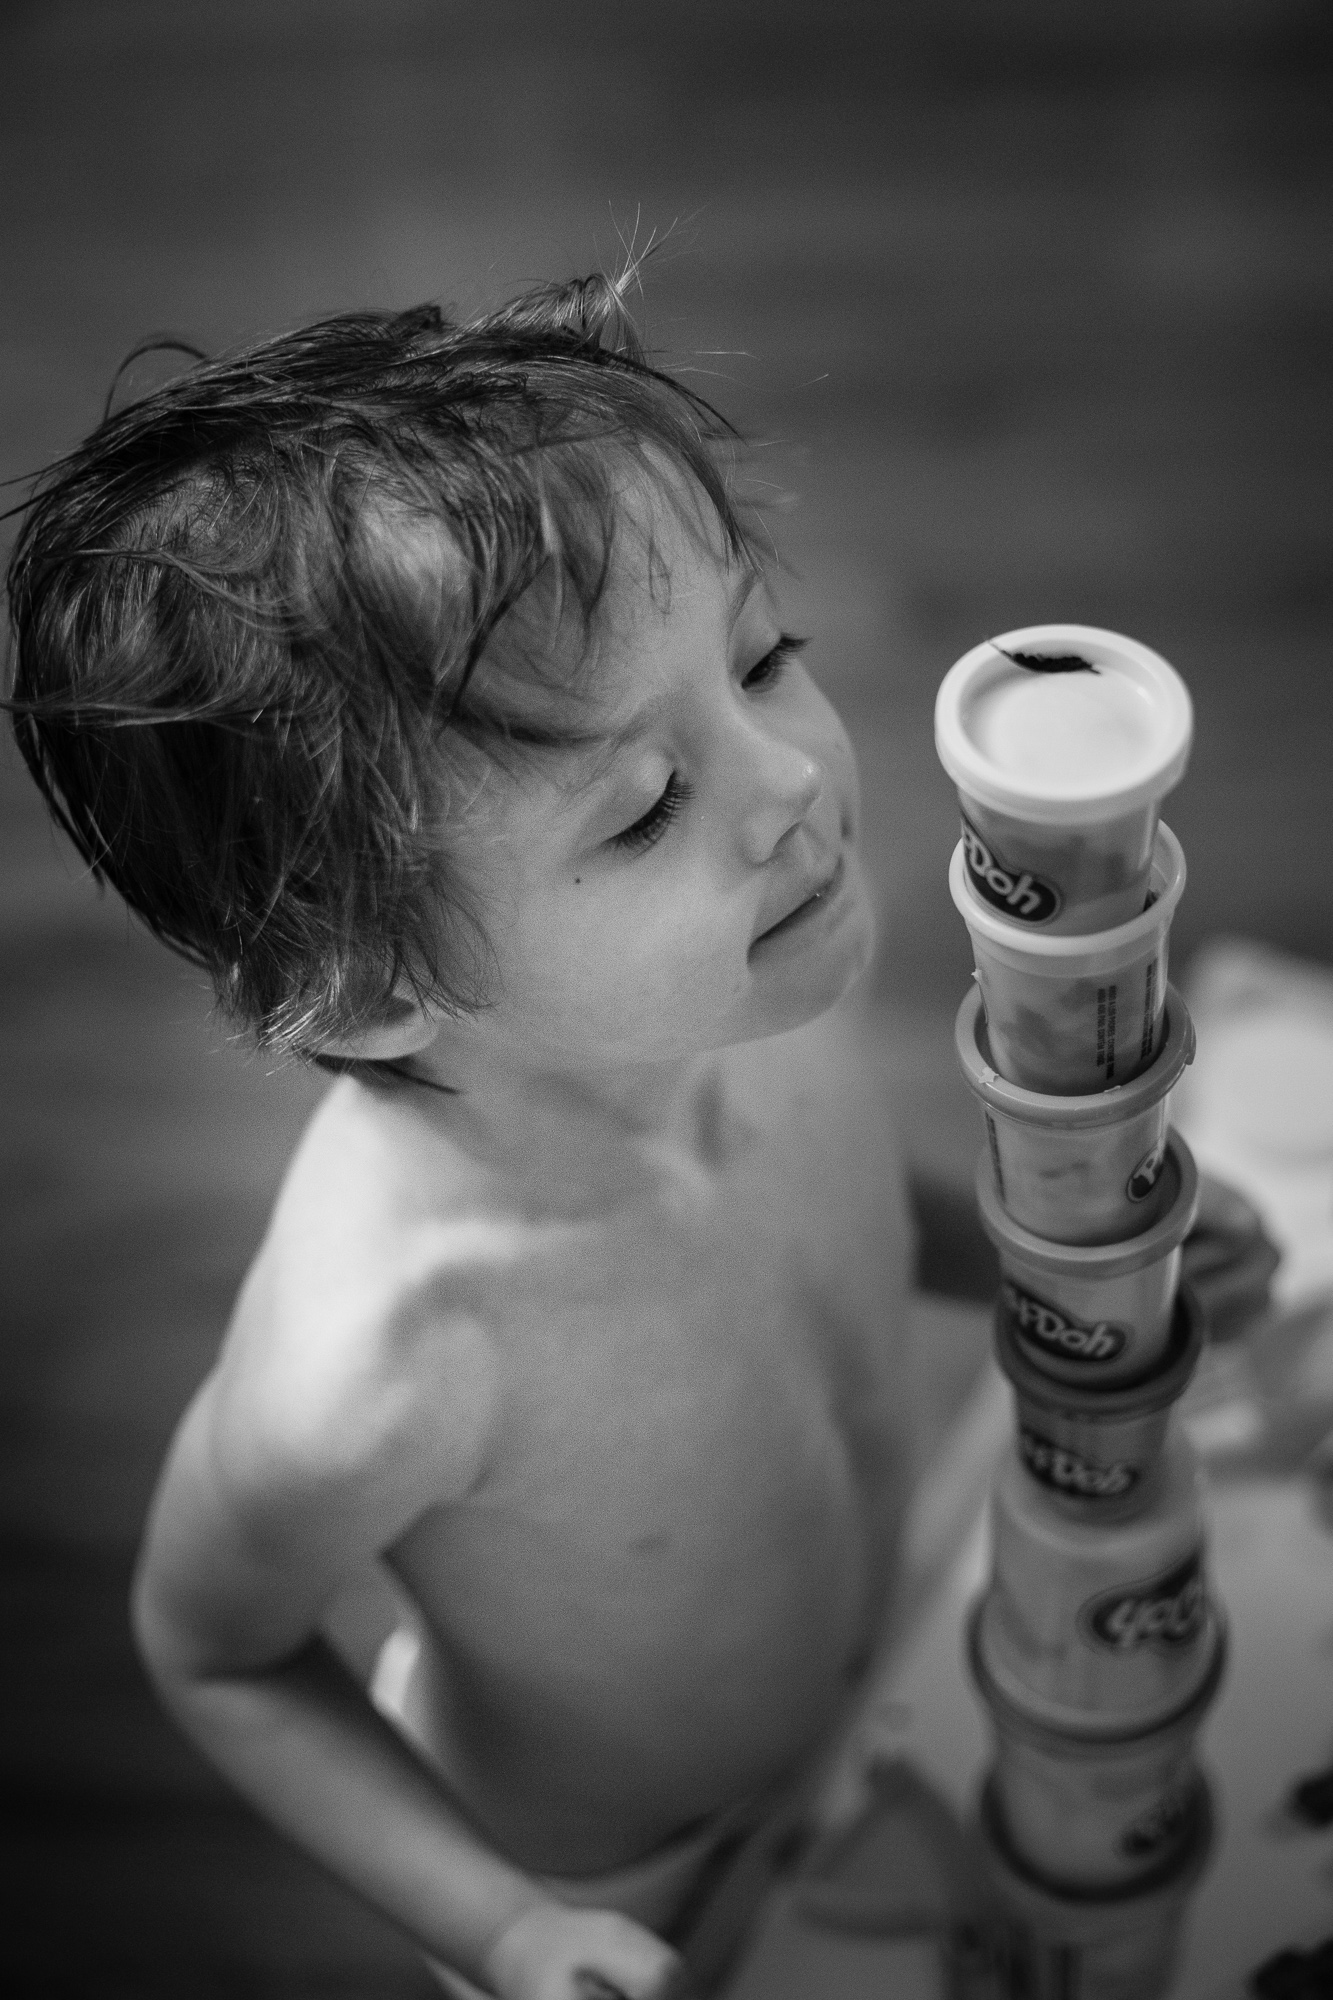 Toddler photography- Playing with play doh